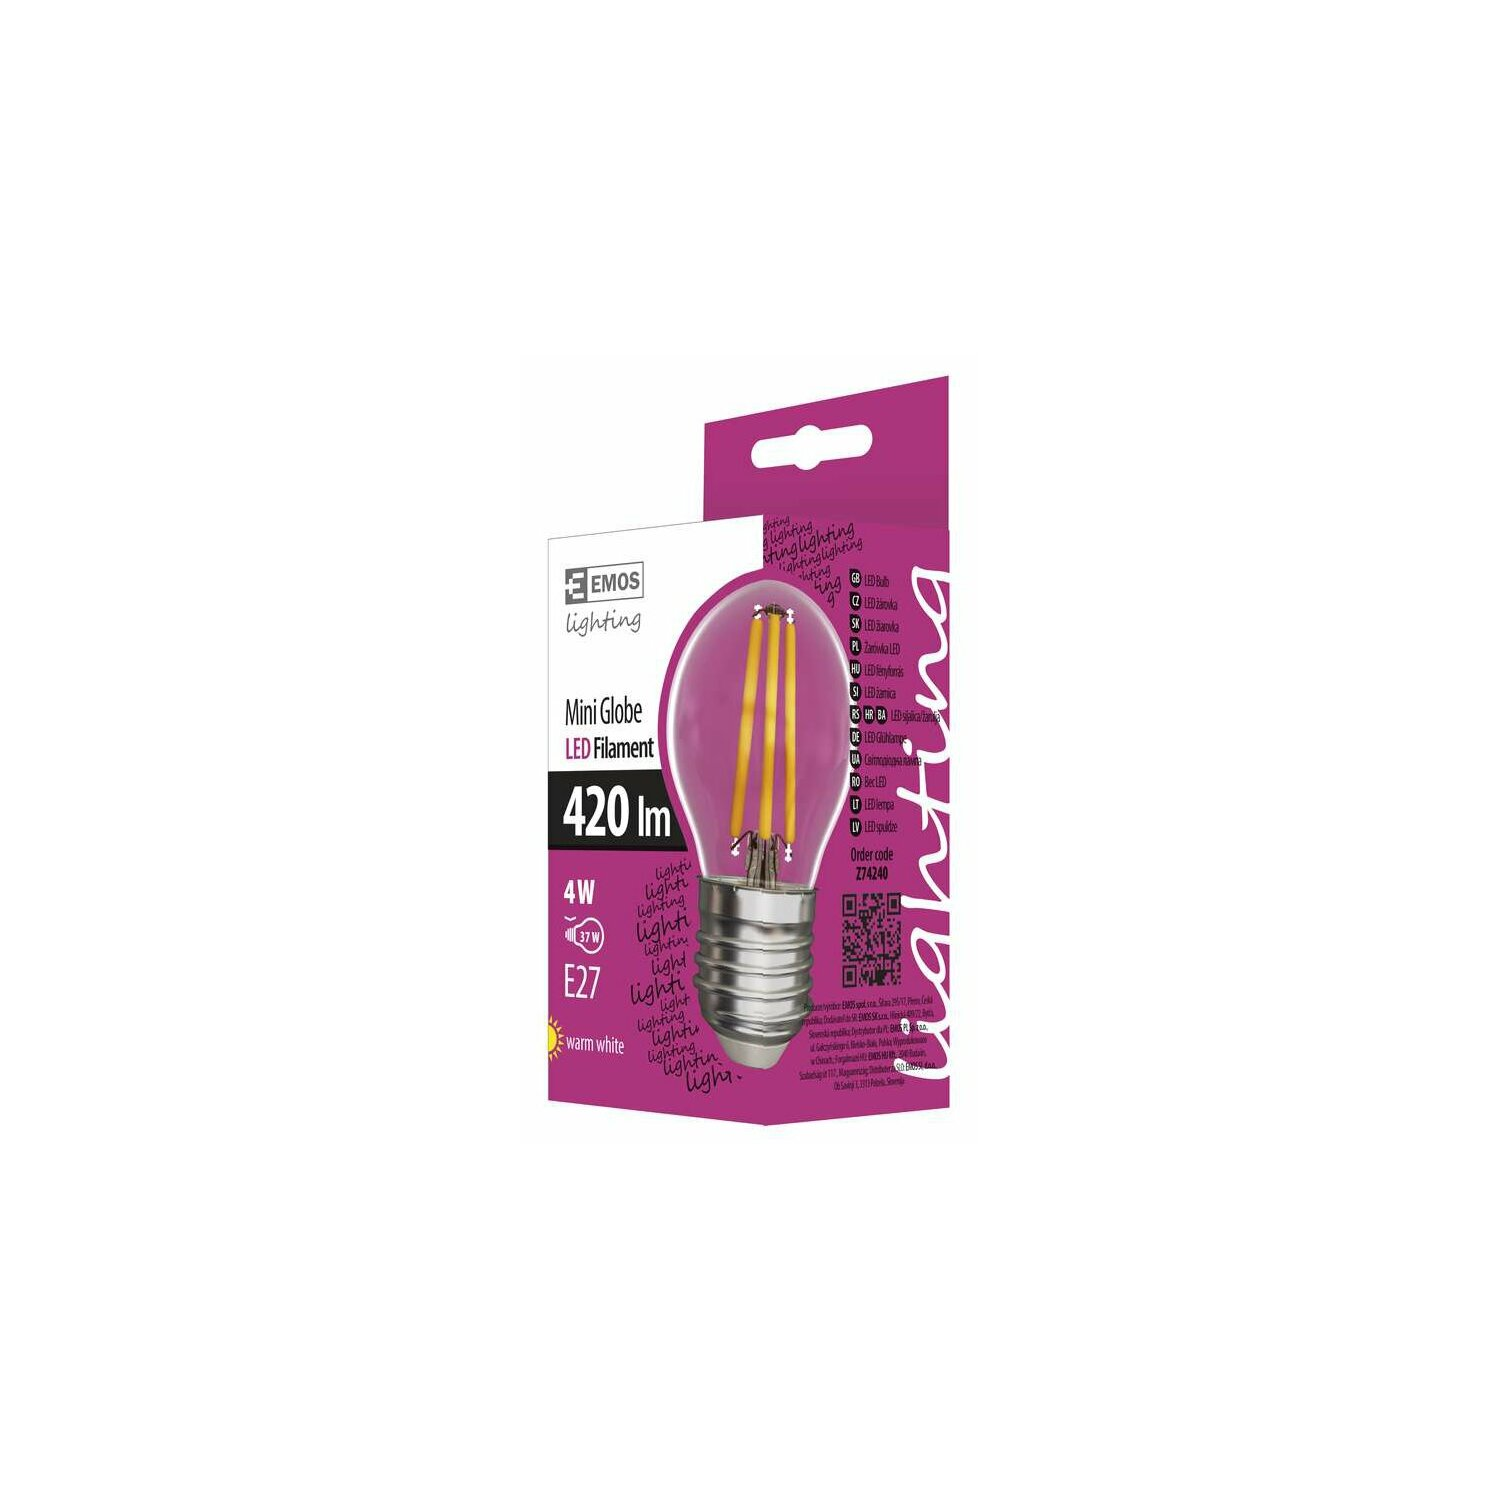 Żarówka LED EMOS Filament mini globe 4W E27 WW Z74240